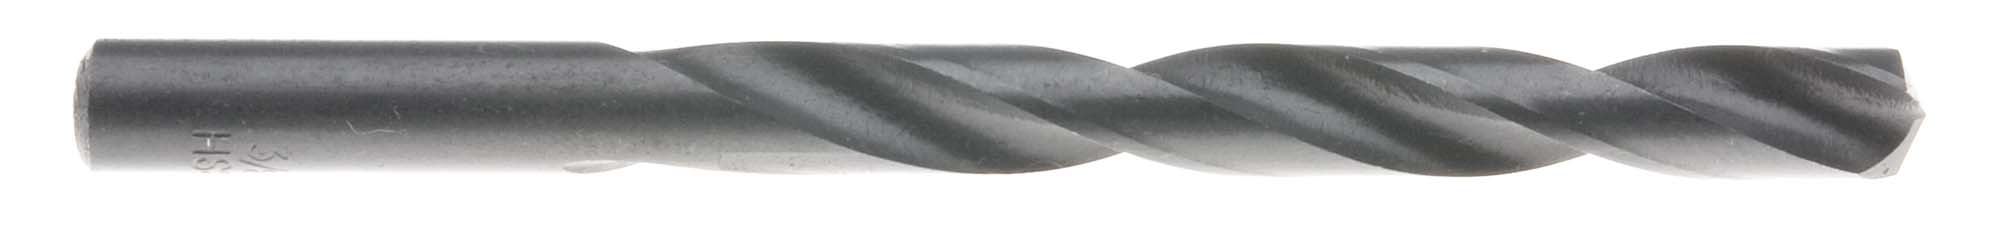 "JSP-5/32  5/32"" Heavy Duty 135 Degree Split Point Jobber Length Drill Bit, High Speed Steel"